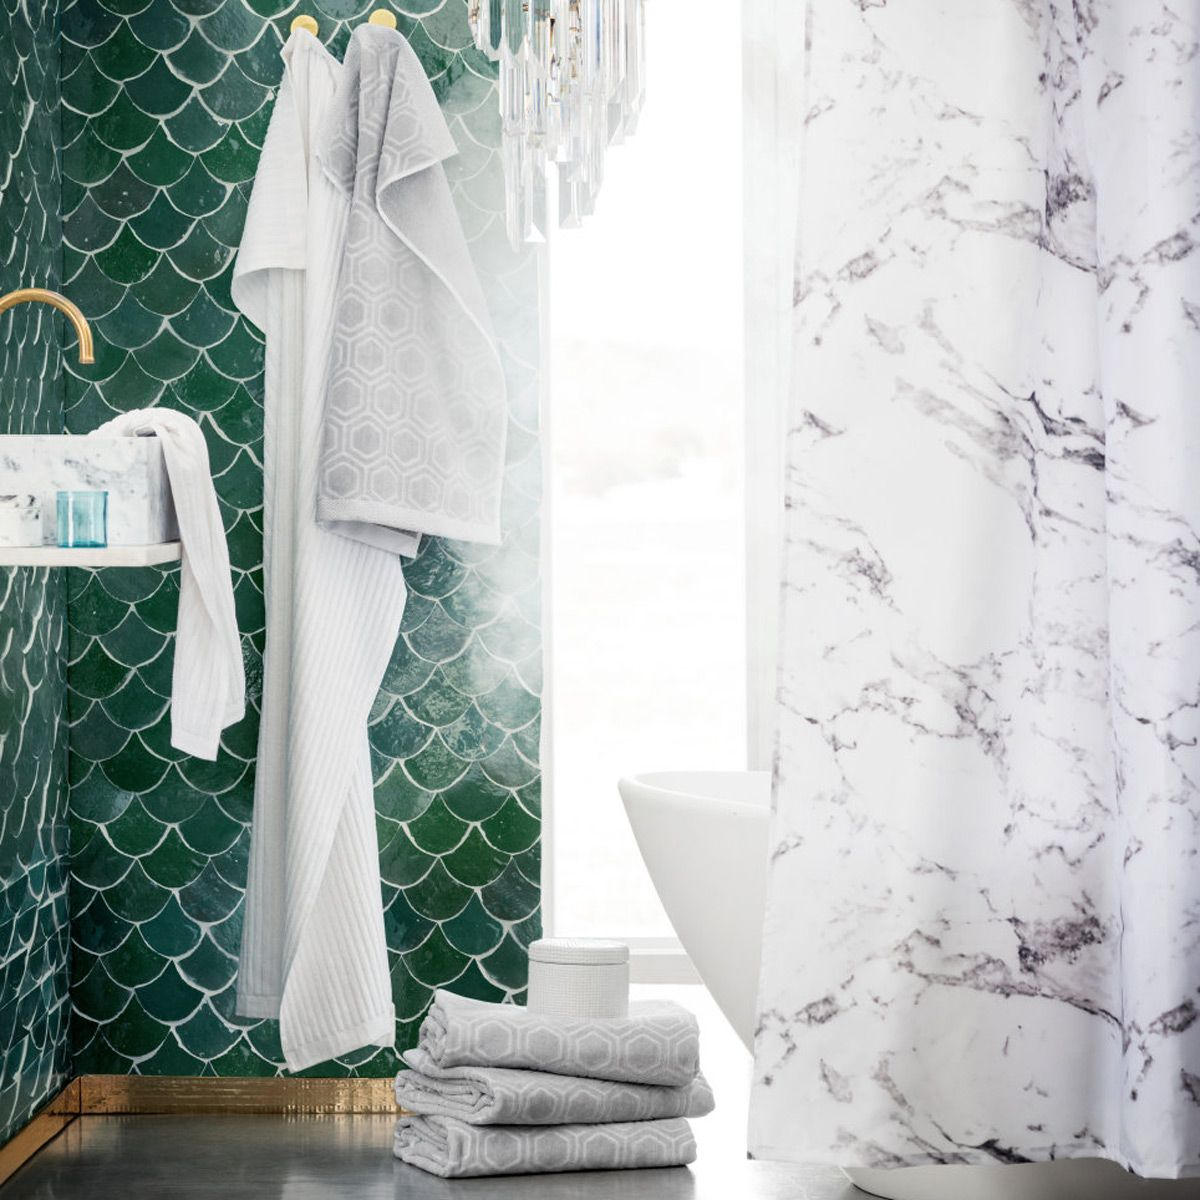 10 Amazing Shower Rooms Dream Home Inspiration